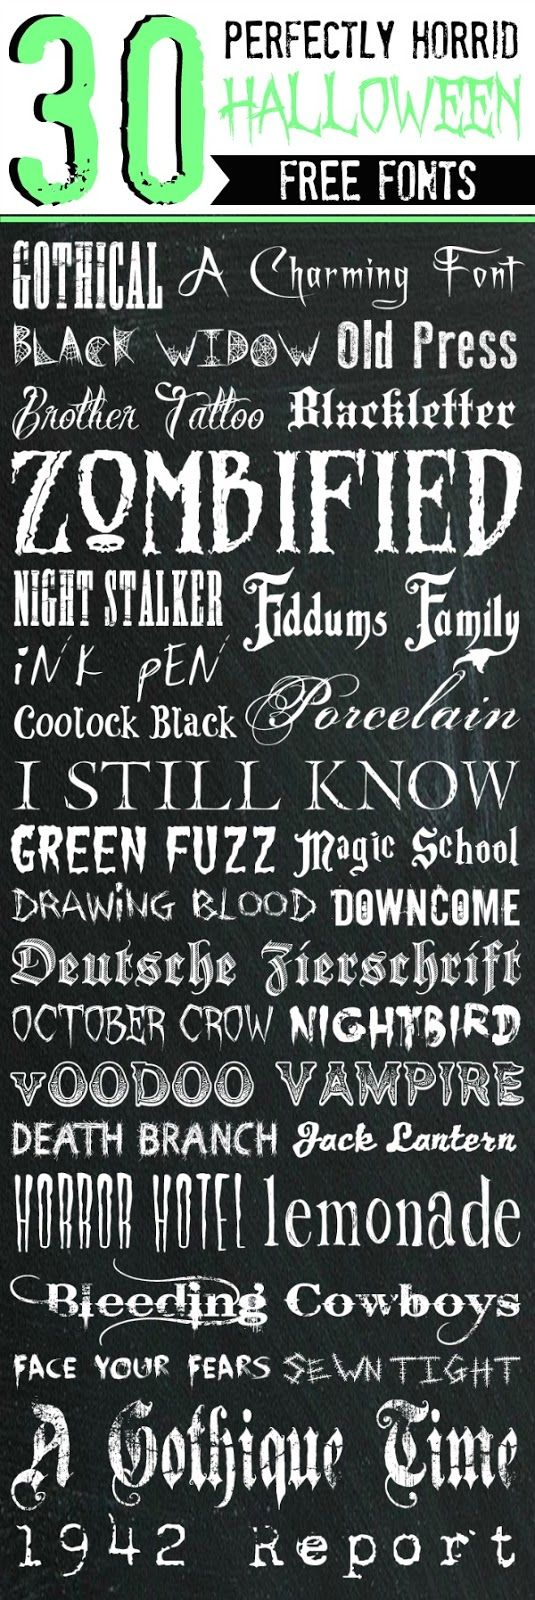 30 Perfectly Horrid Halloween Fonts thecraftedsparrow.com